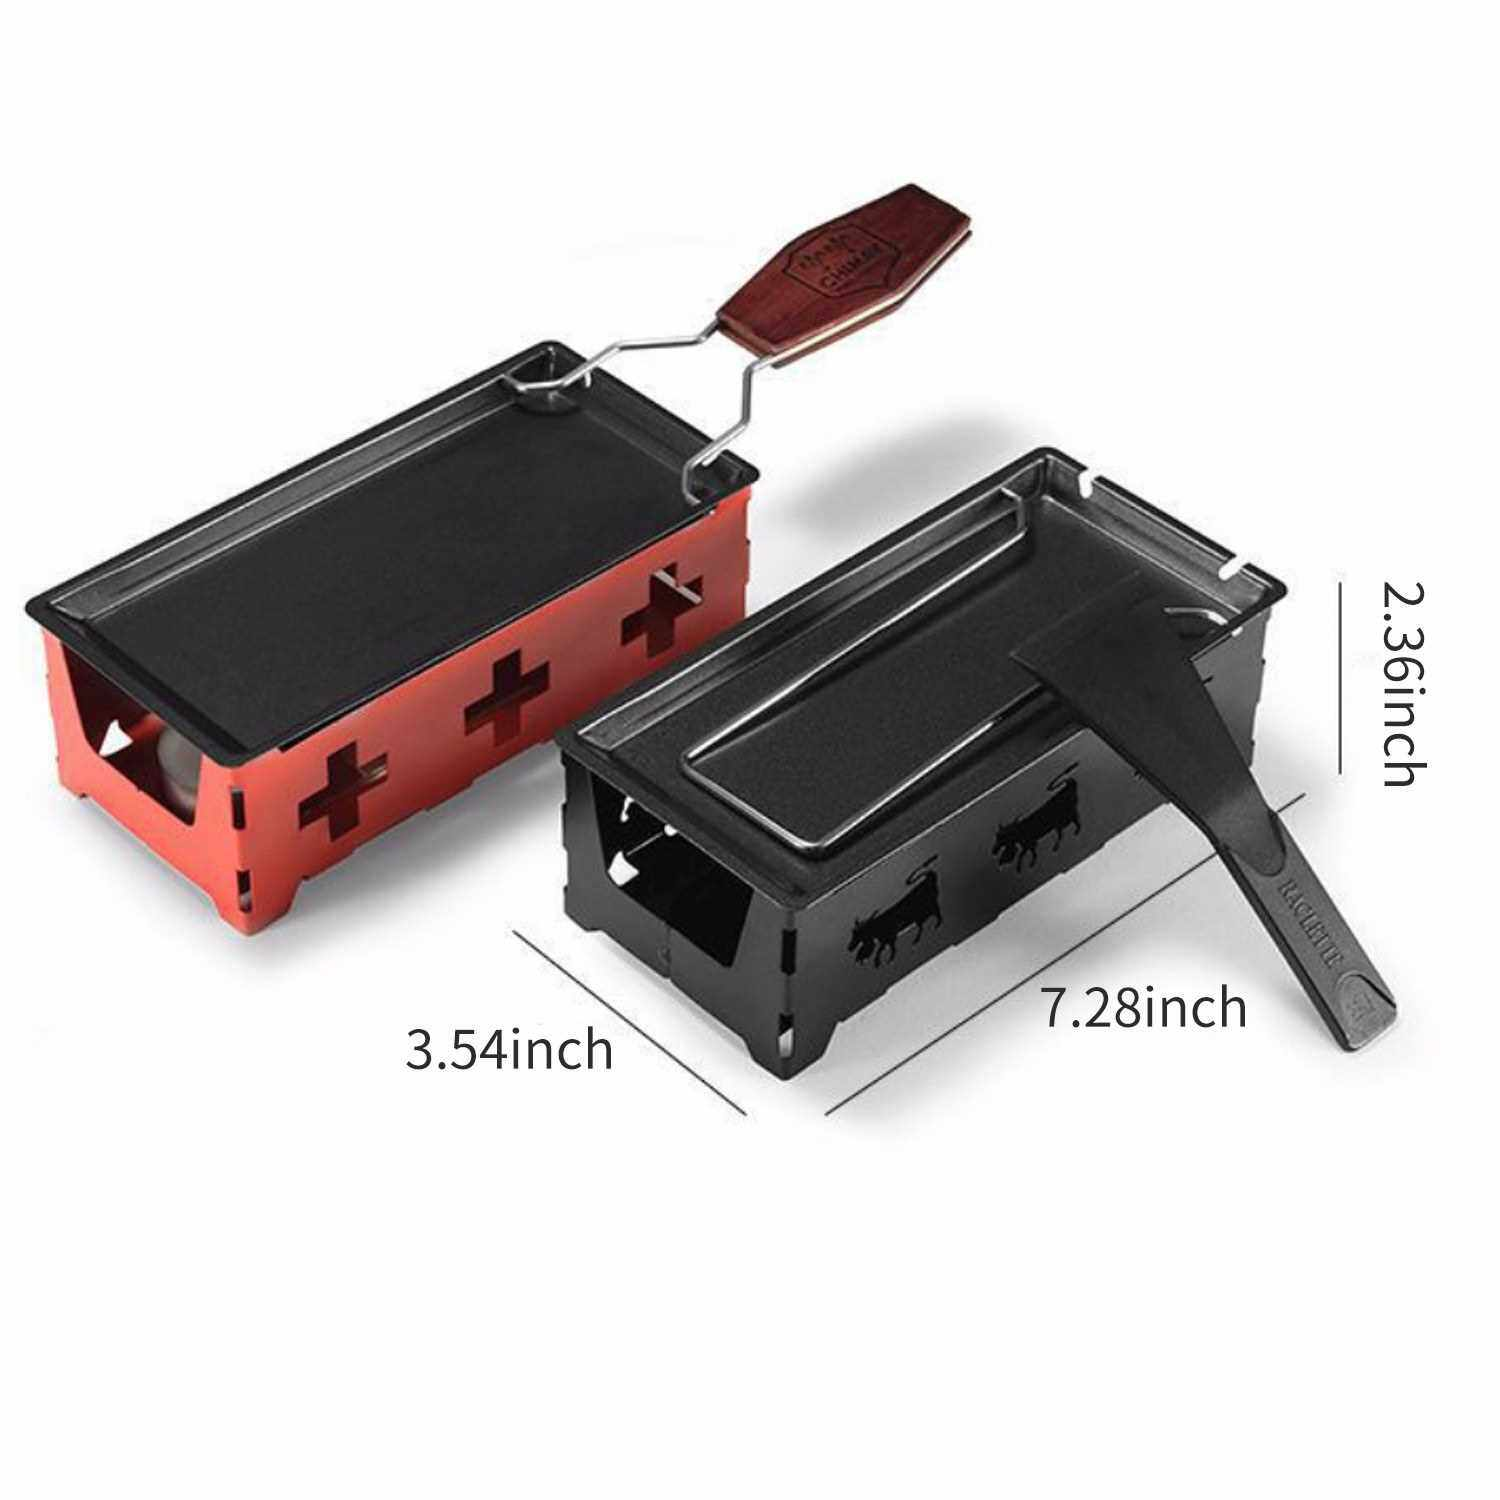 People's Choice Non-Stick Raclette Grill Set Cheese Melter Pan with Spatula Foldable Wooden Handle Melted Cheese Raclette Carbon Steel Kitchen Gadgets (Black)